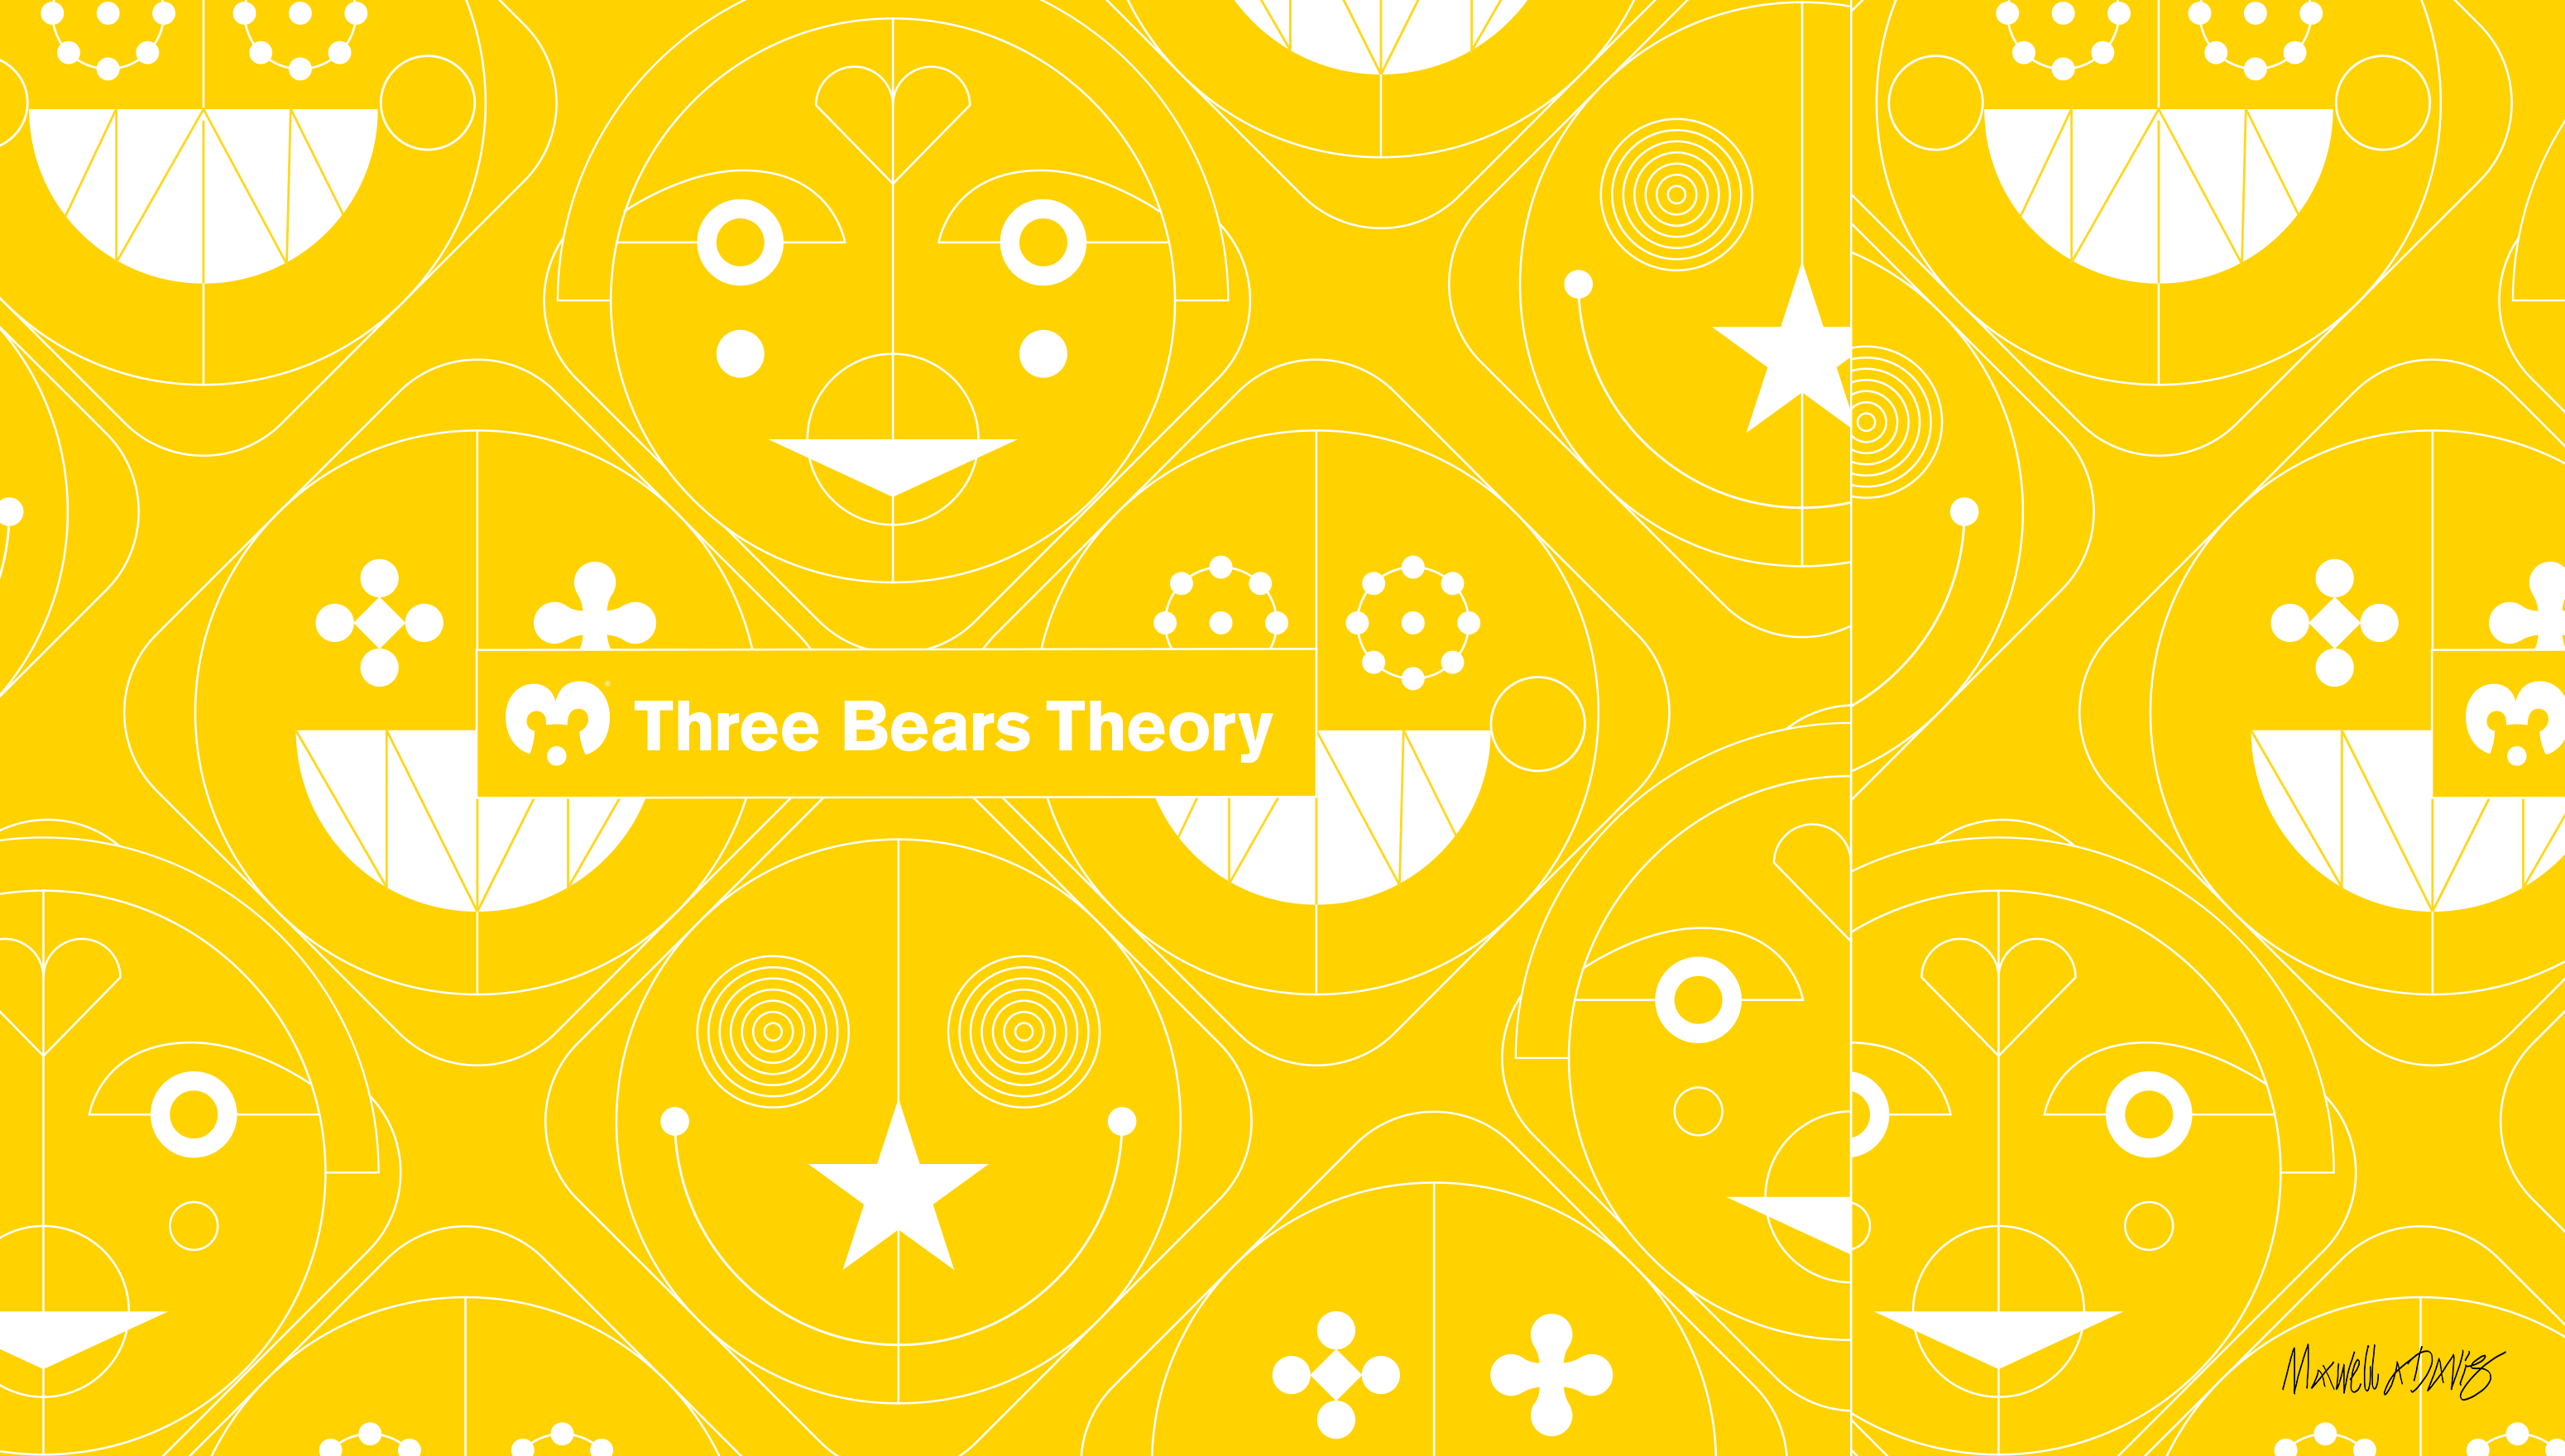 visual identity and motion design, studio three bears theory (studiotbt)